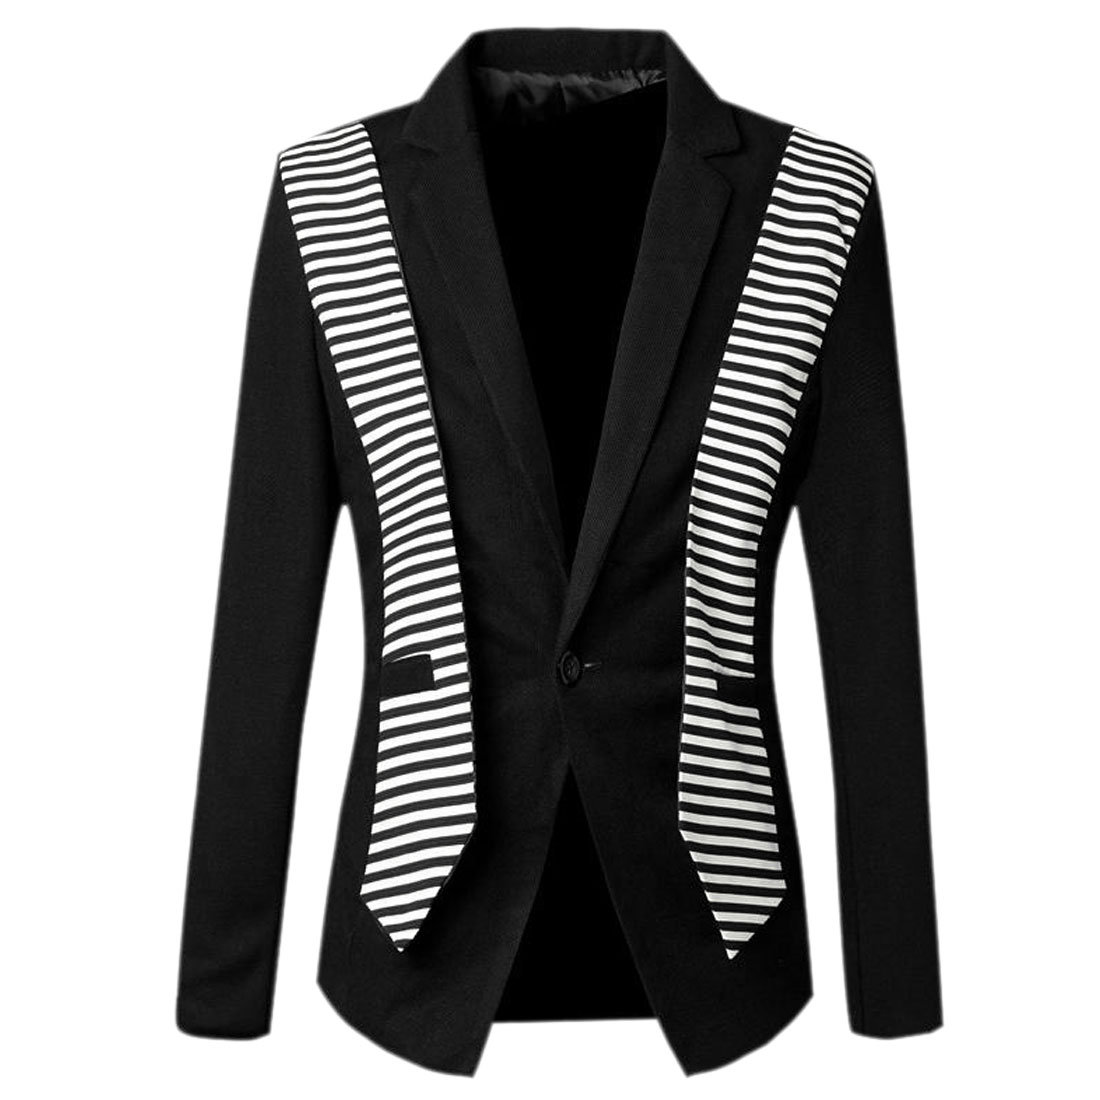 Men Peaked Lapel One Button Front Winter Blazer Black White S